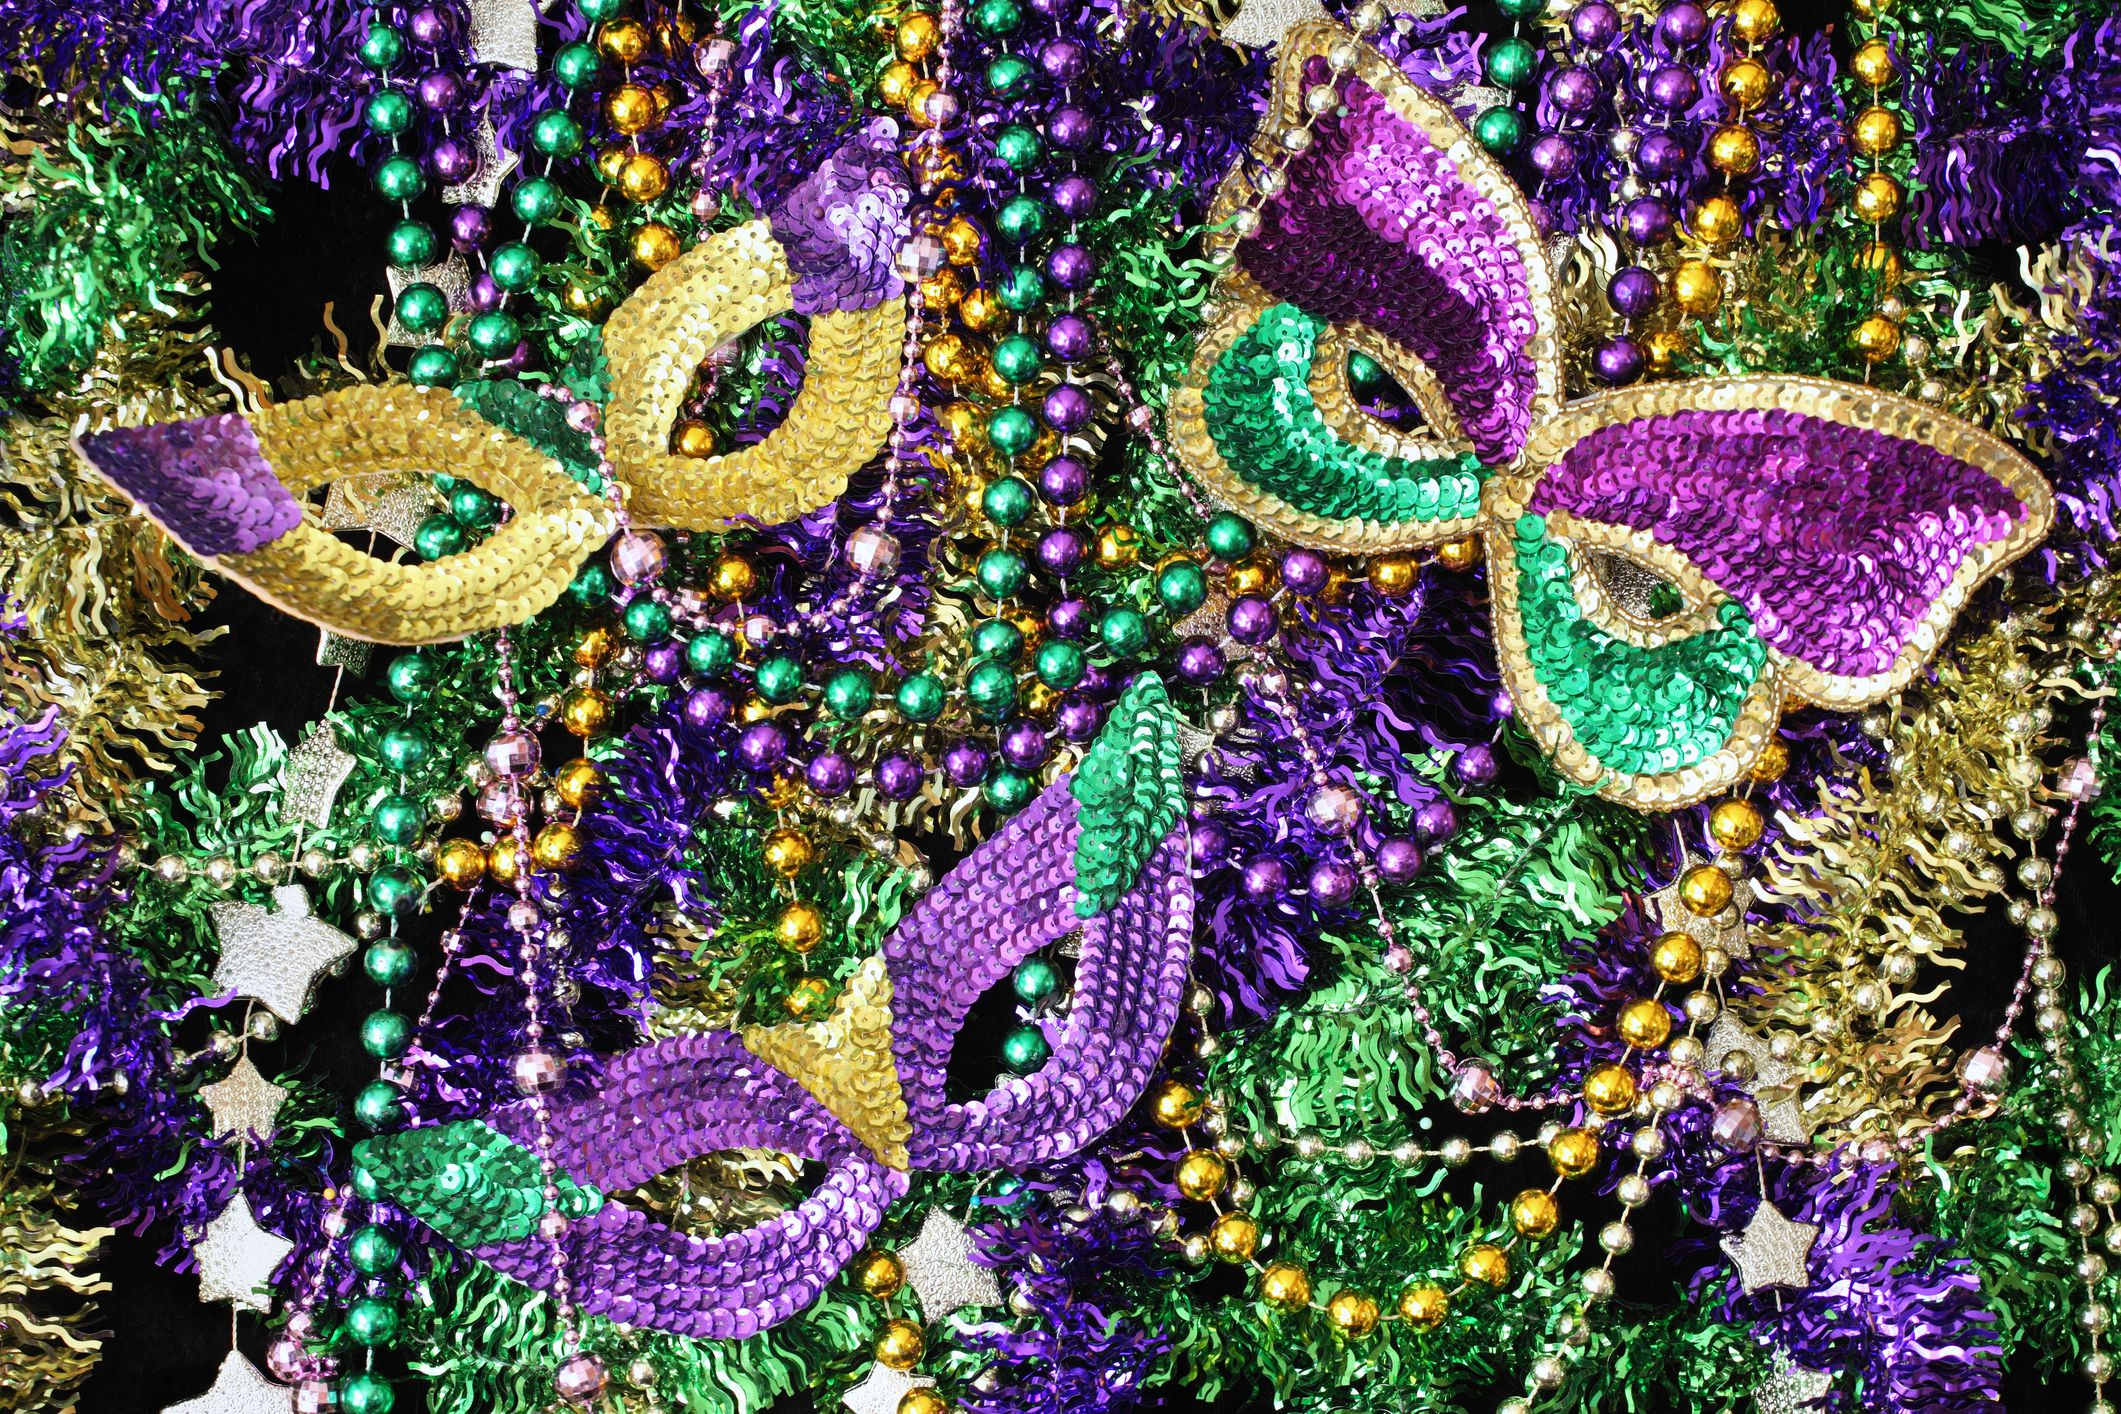 getty-new-mardi-gras-beads-589b7a233df78c475897d7a1